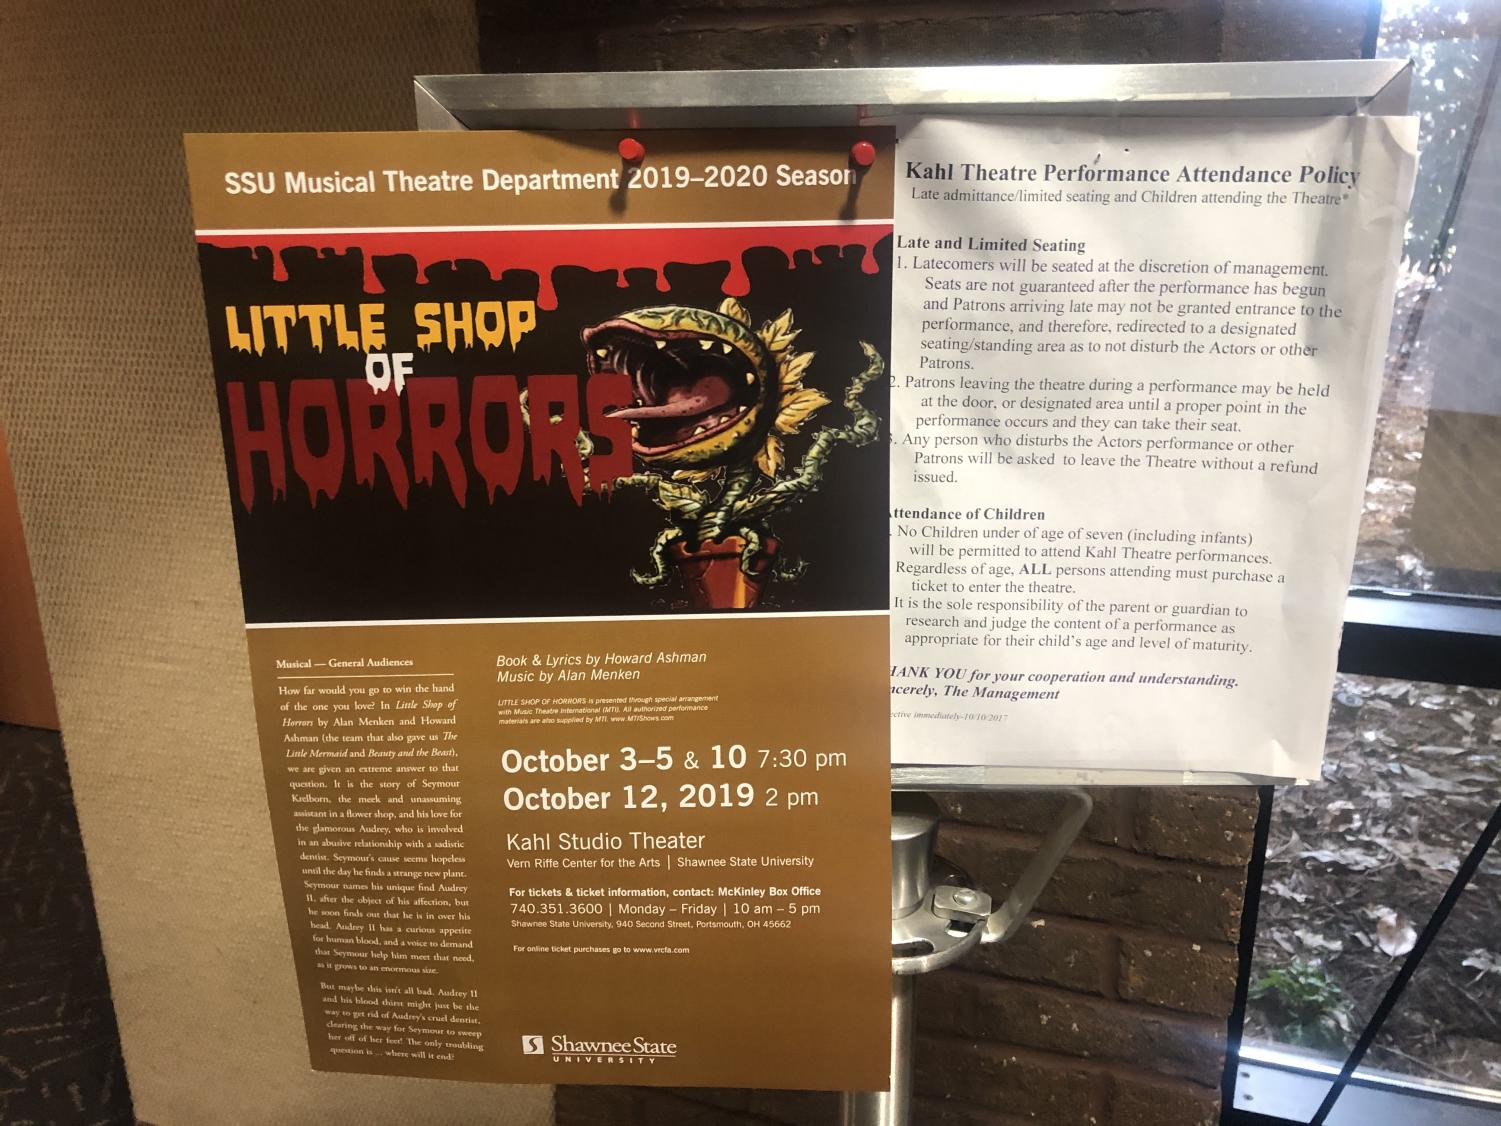 SSU+Little+Shop+of+Horrors+poster+and+attendance+policy